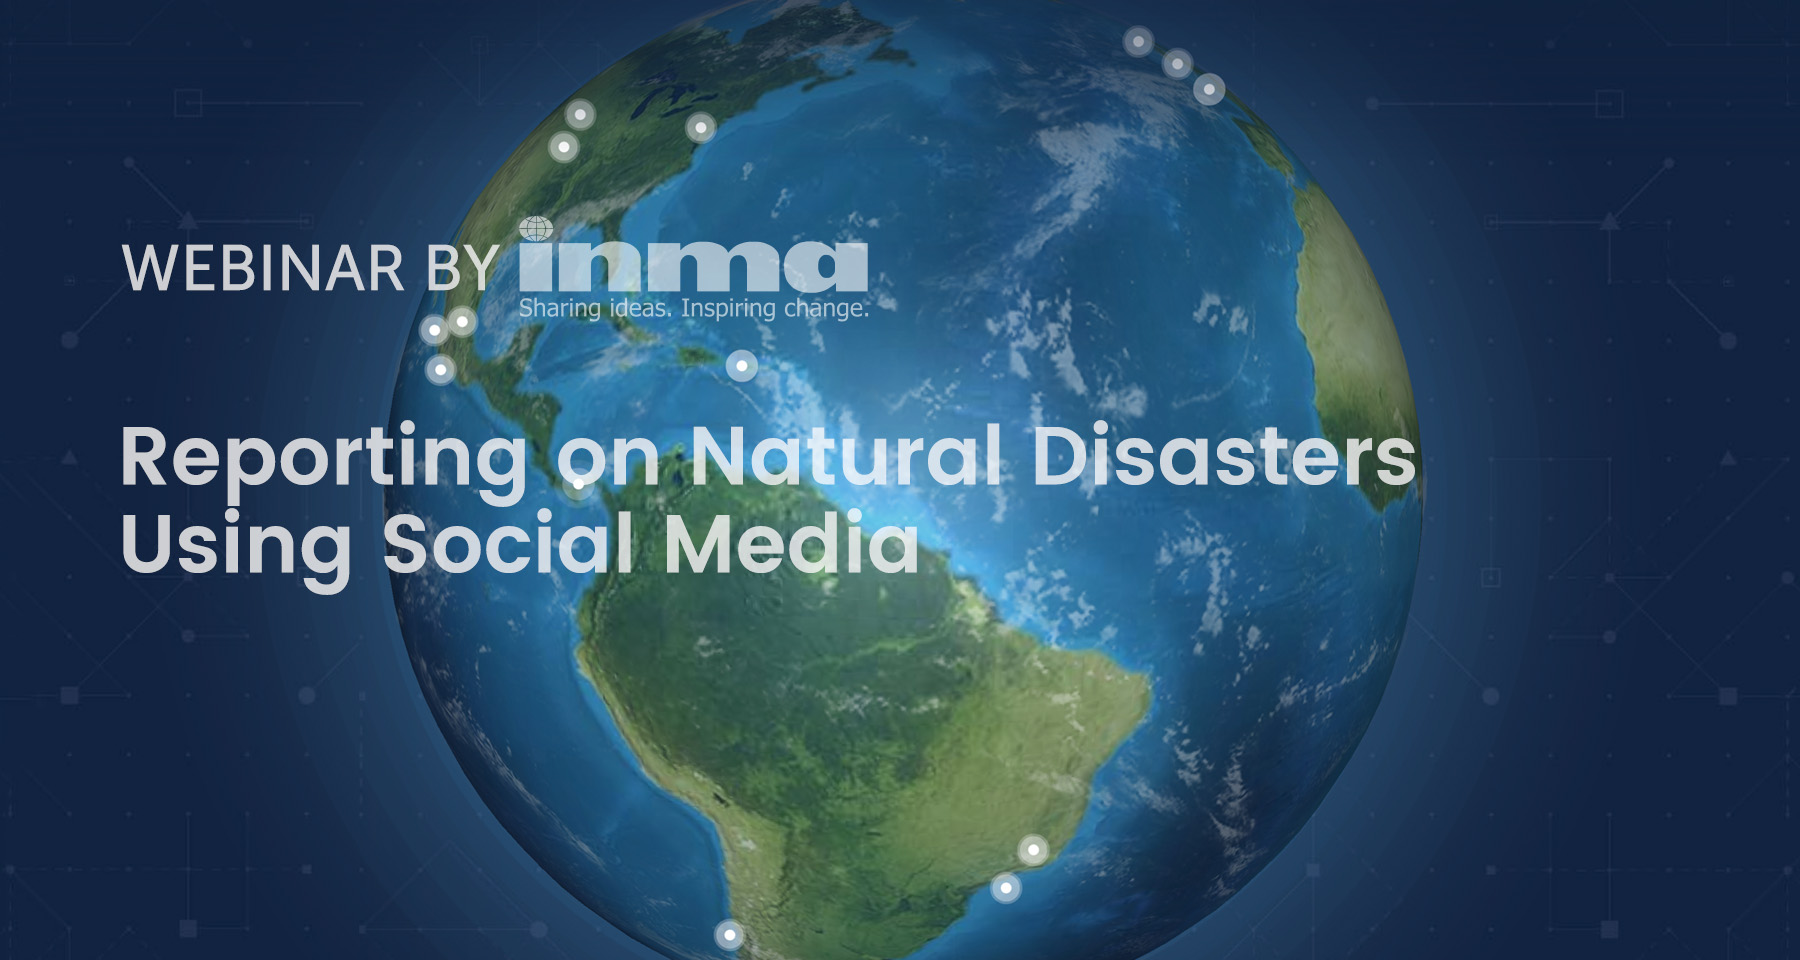 Upcoming INMA Webinar: Reporting on natural disasters using social media